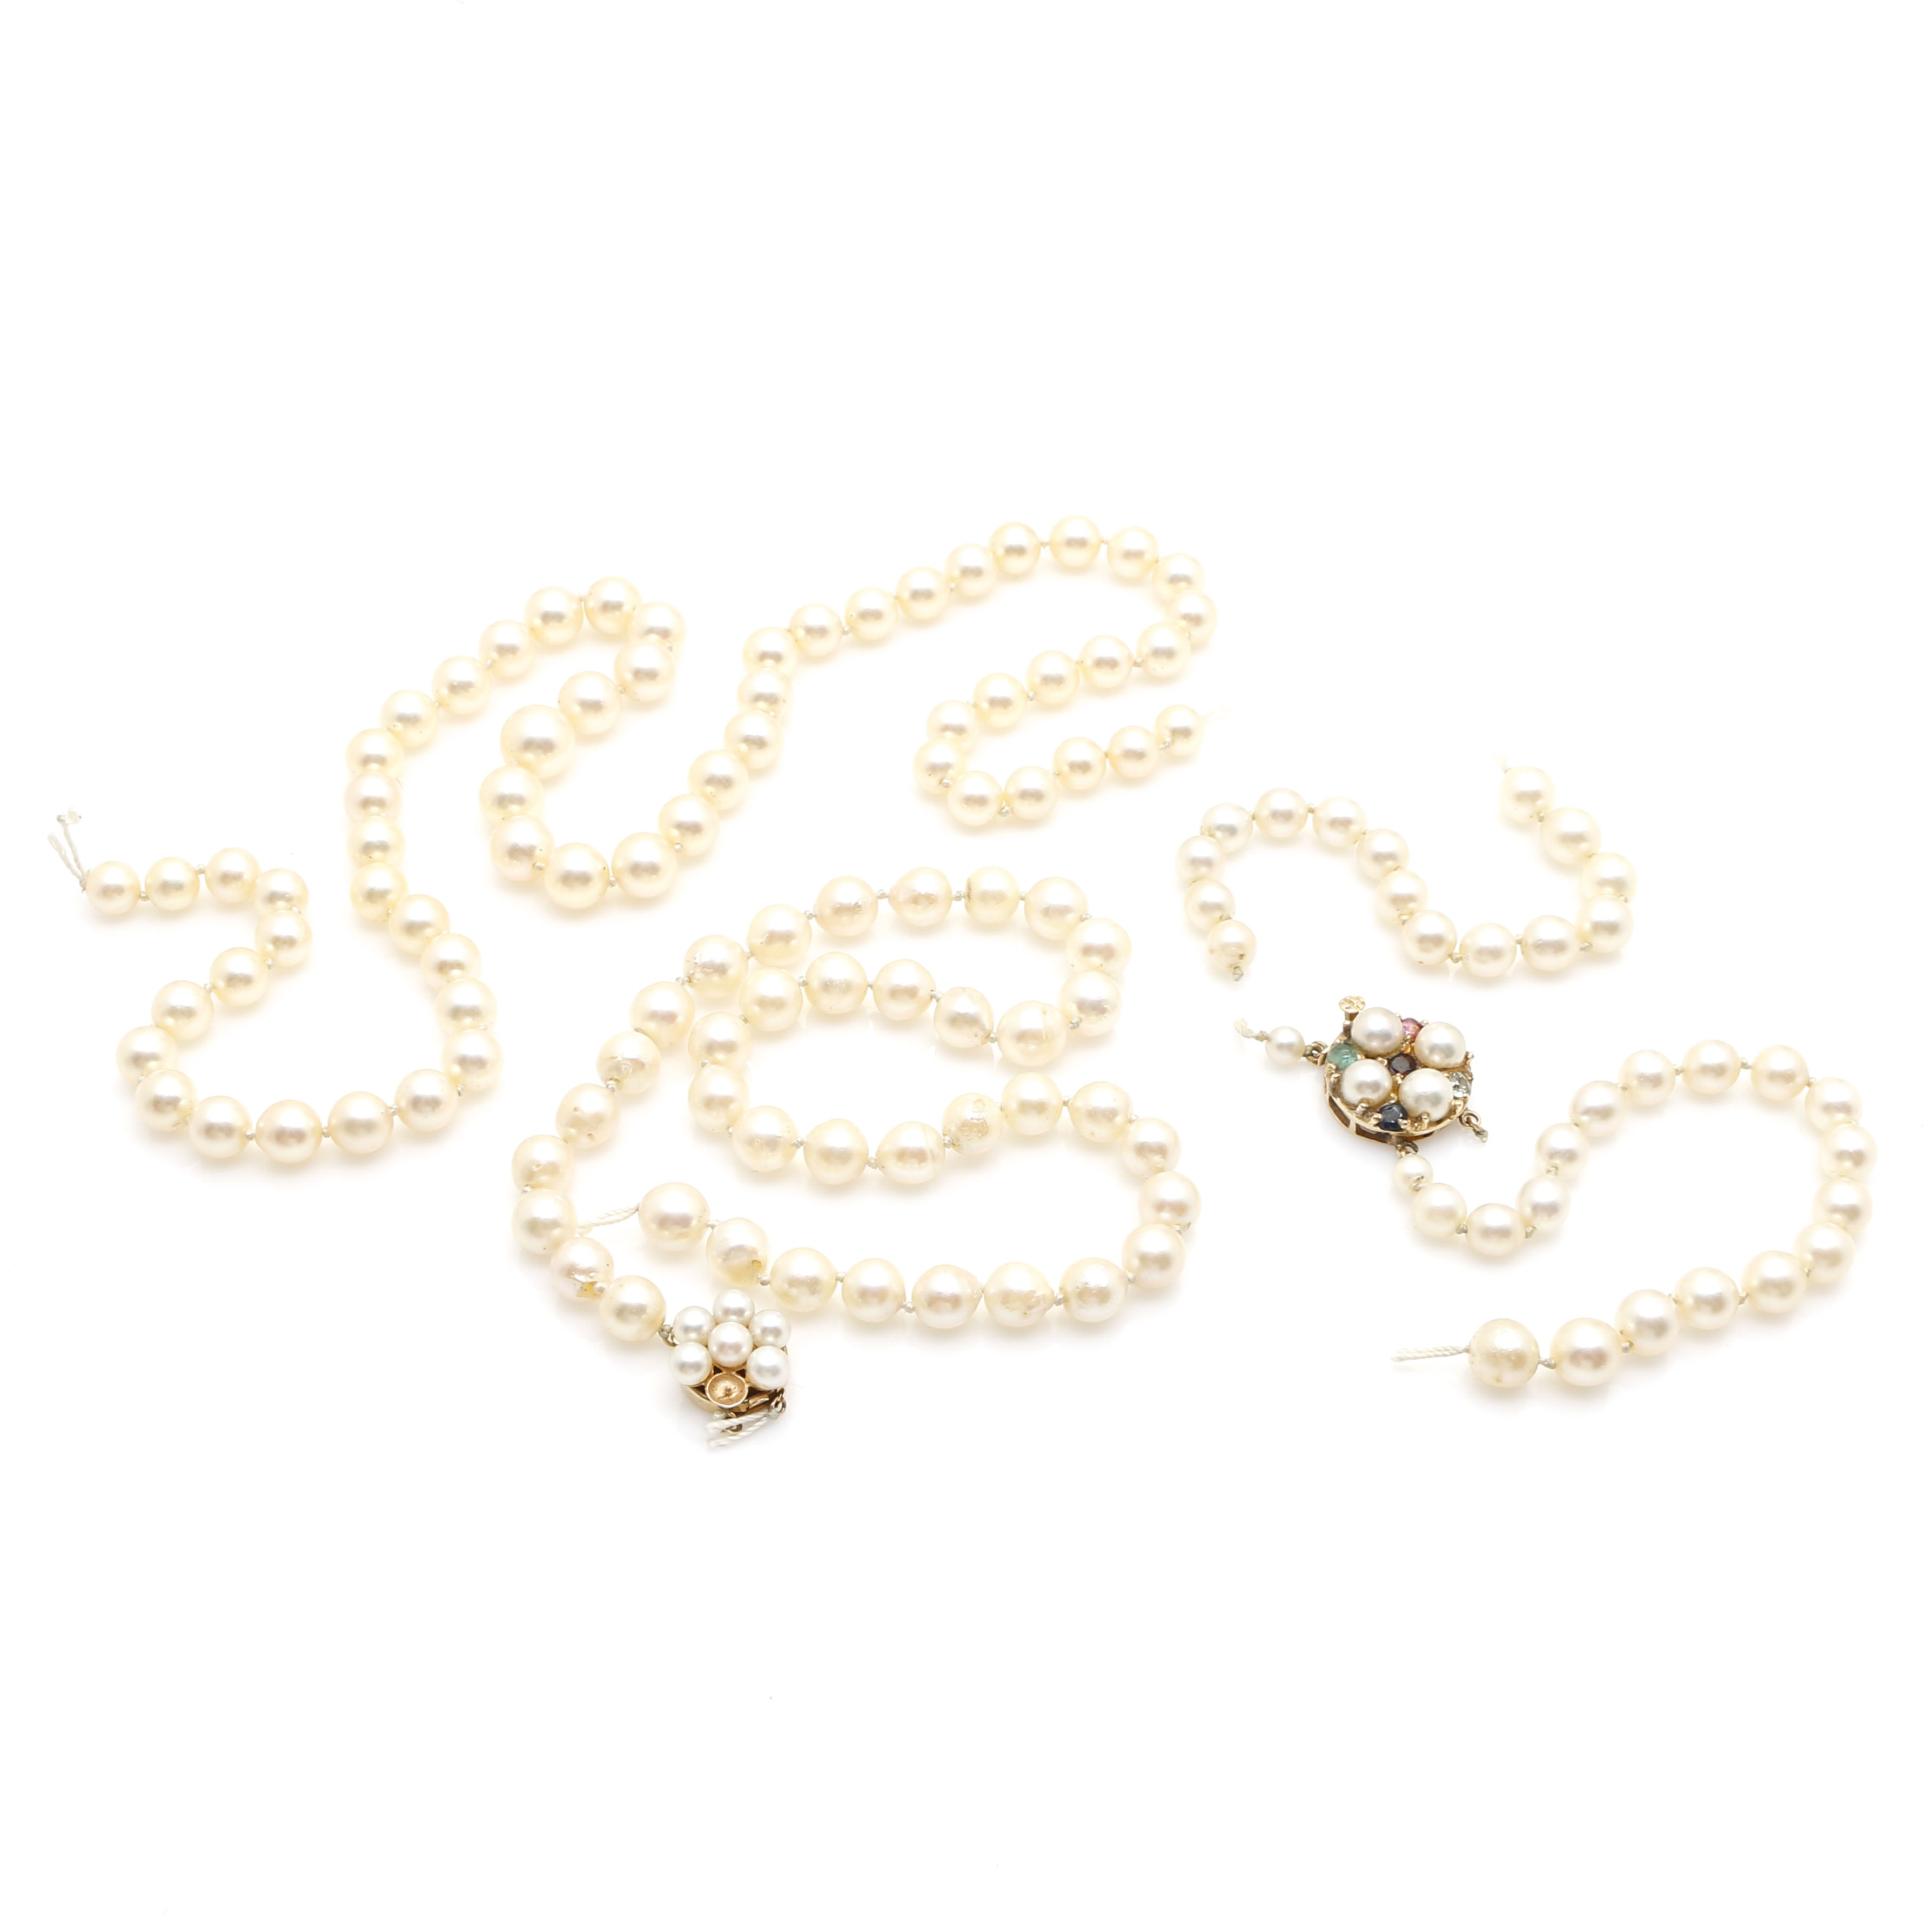 Pearl Strands with 14K Yellow Gold Findings